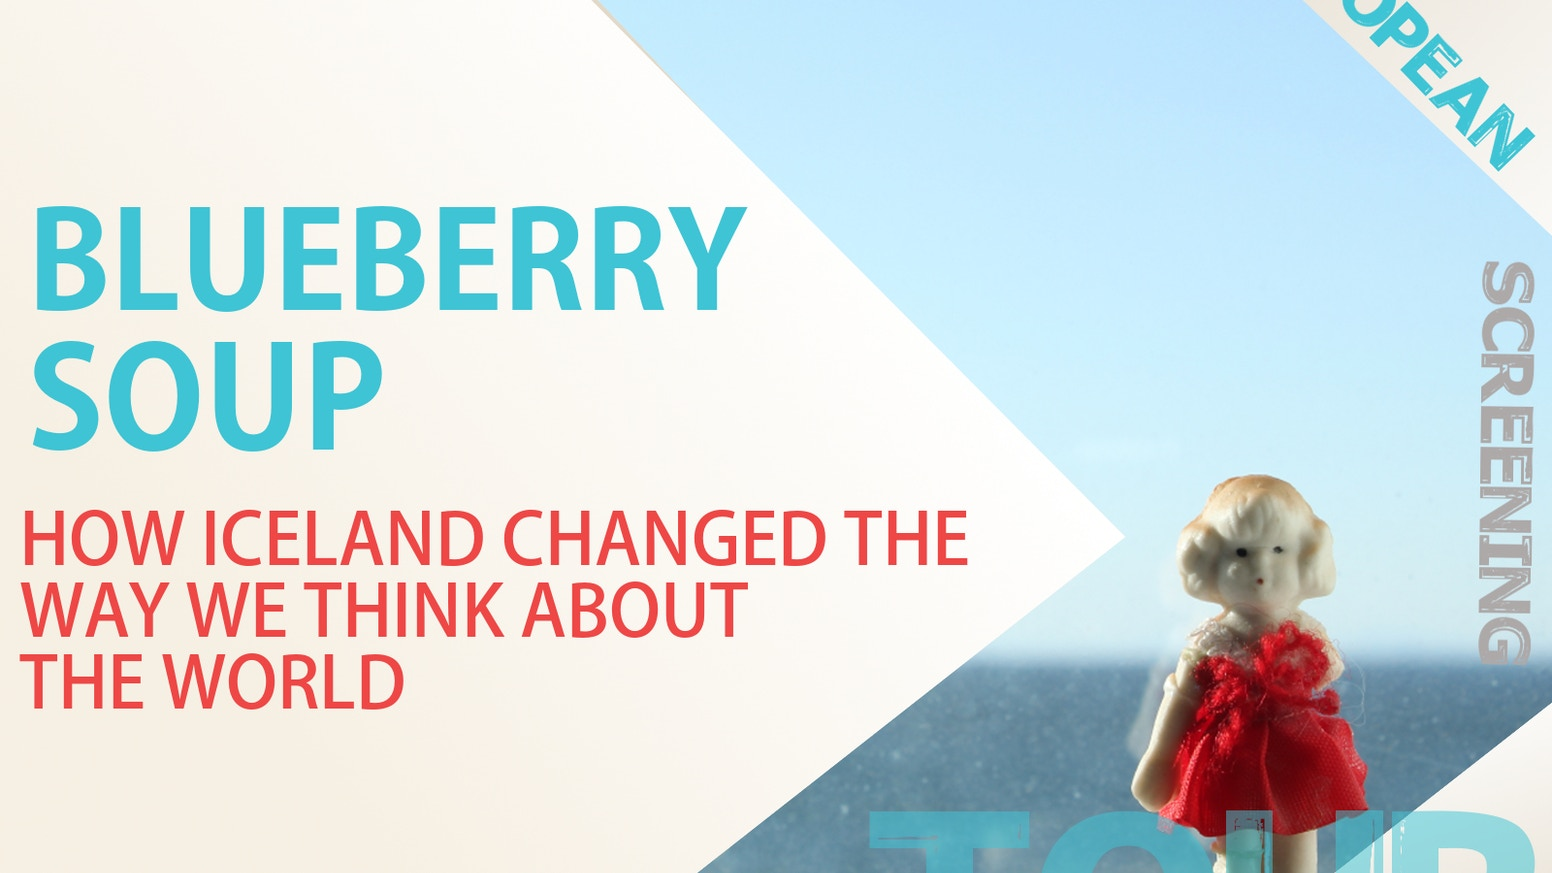 Blueberry Soup, a film about the grassroots rewriting of the Icelandic constitution, journeys to Europe to talk about civic engagement.